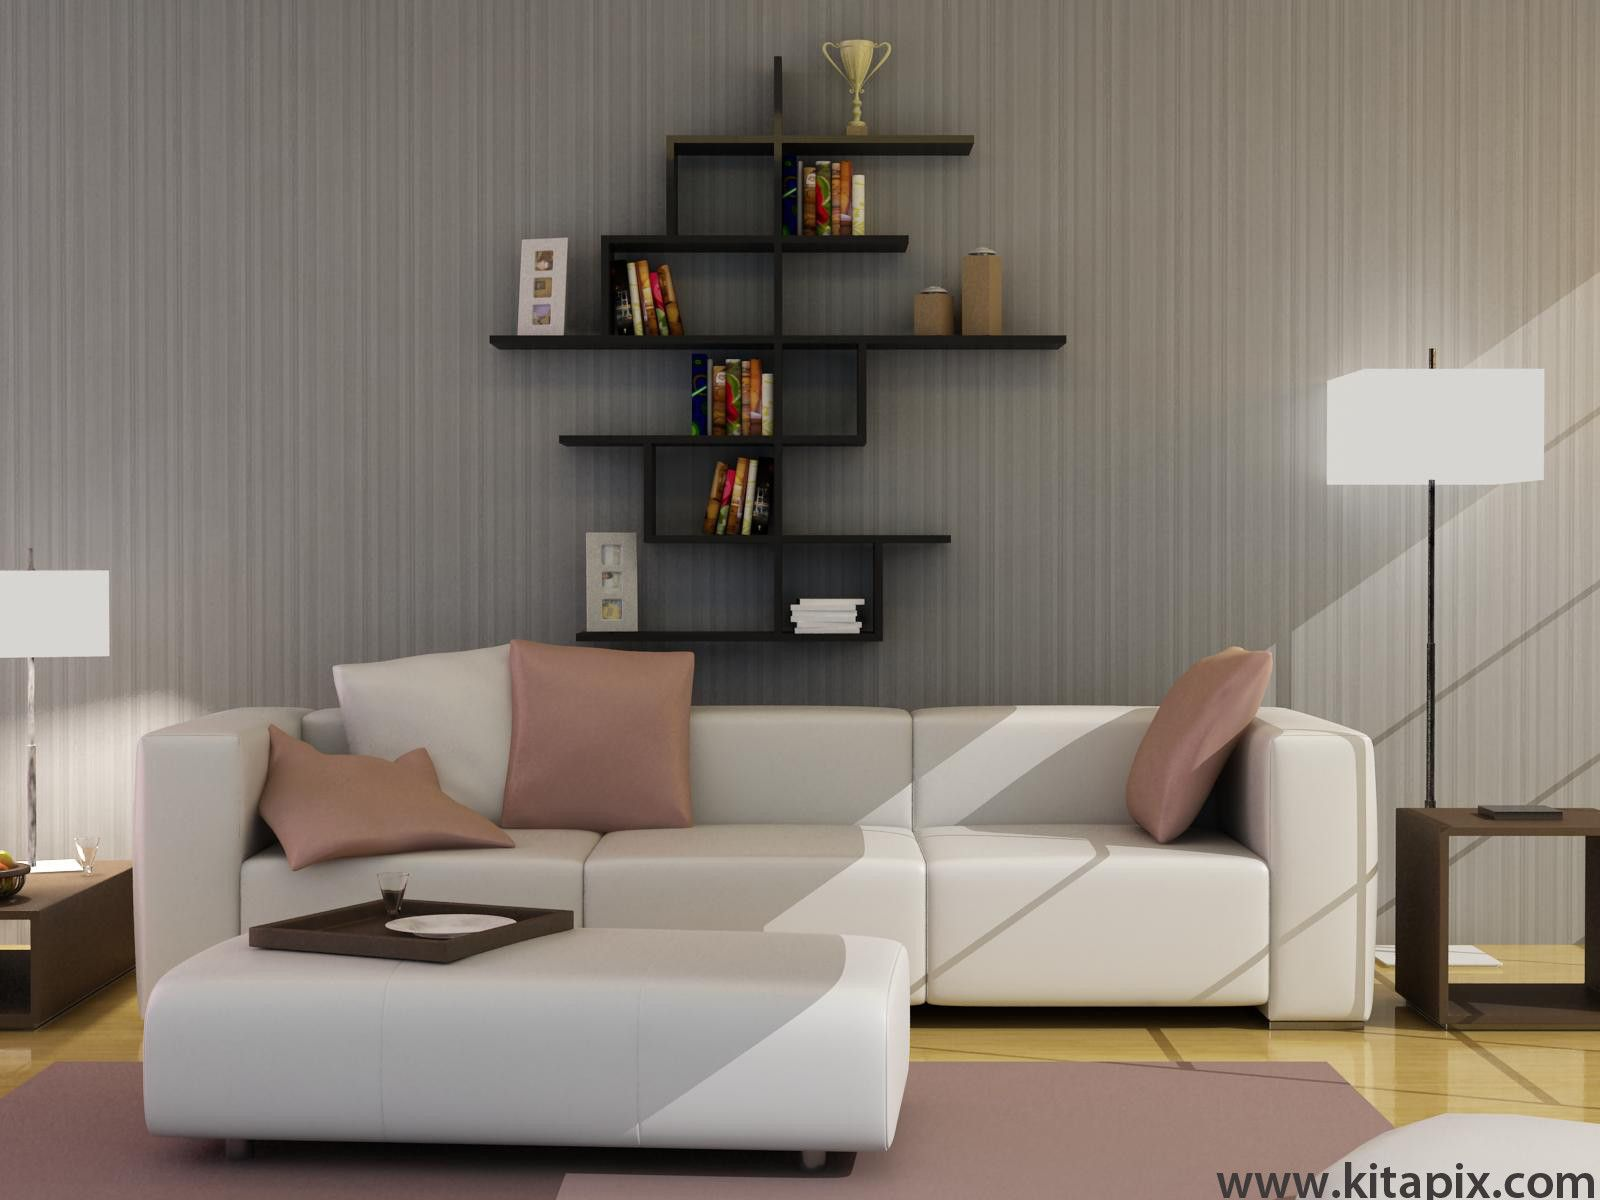 No4 bookcase bookcases shelving at modern furniture dealsuk up to 70 off unique furnitures direct from the makers